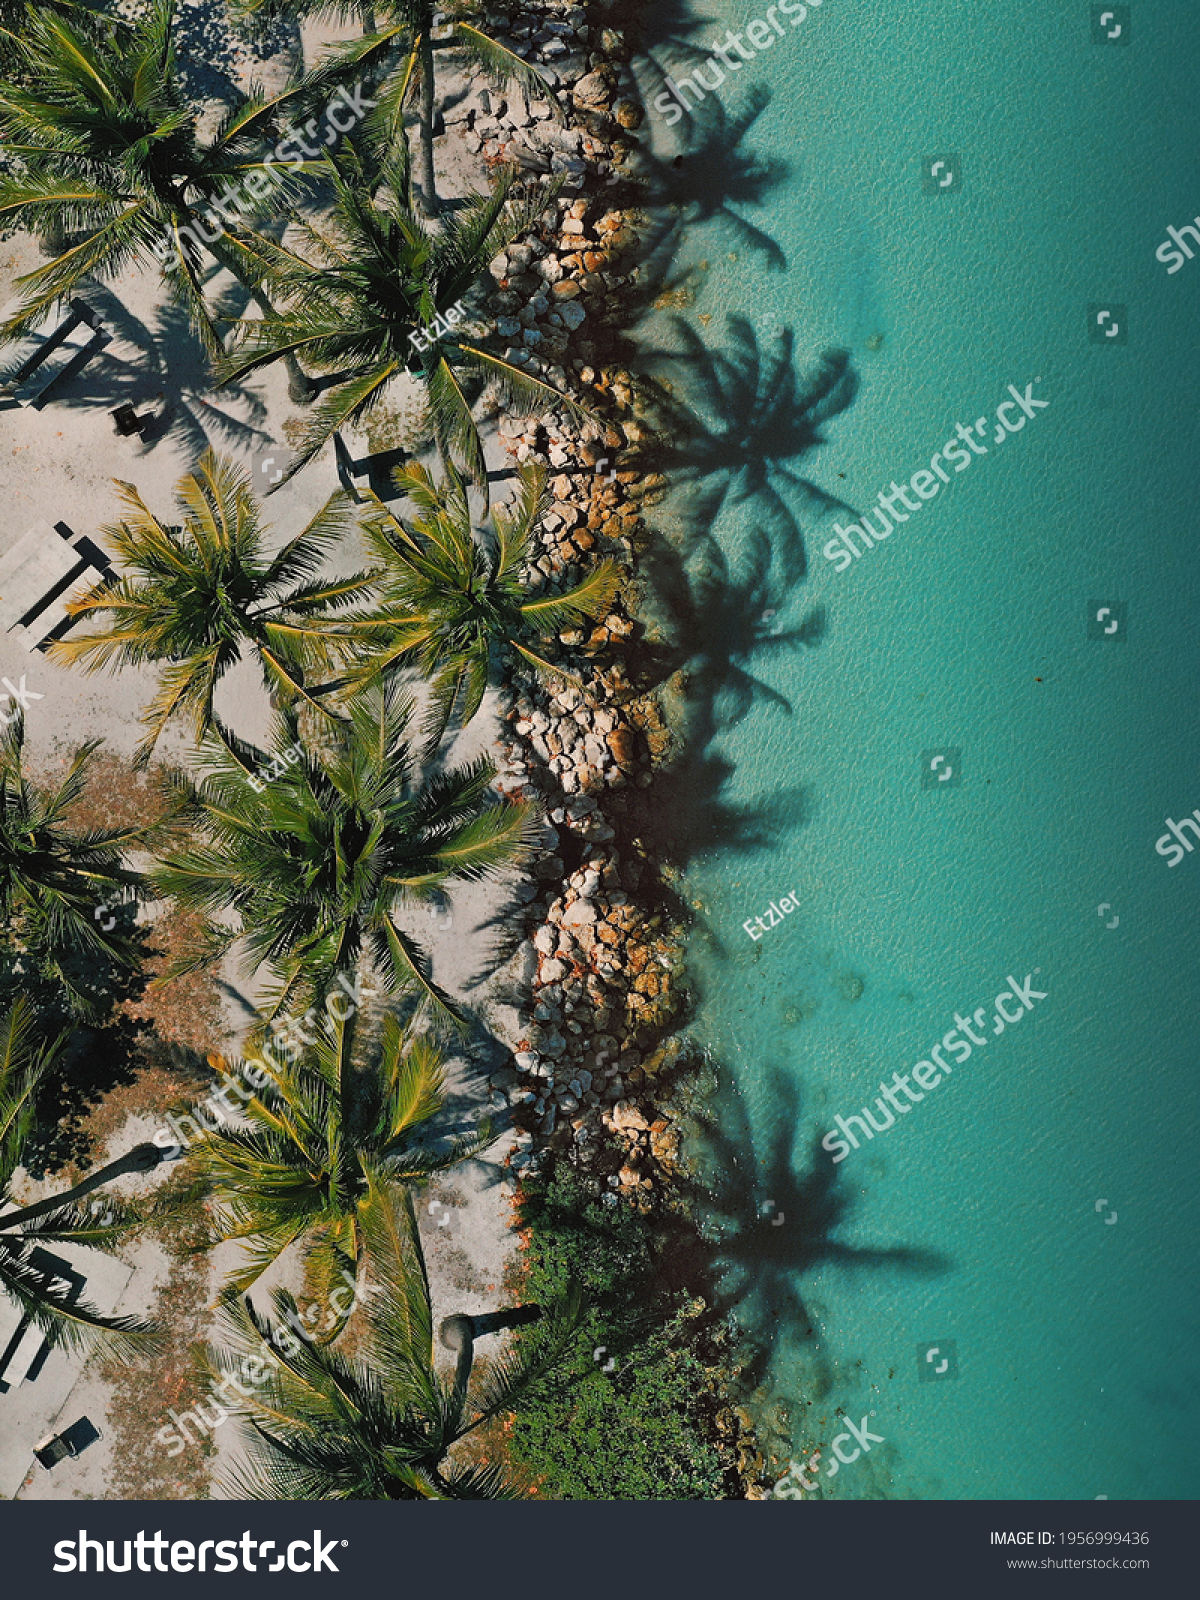 Drone flying above the coastline  #1956999436